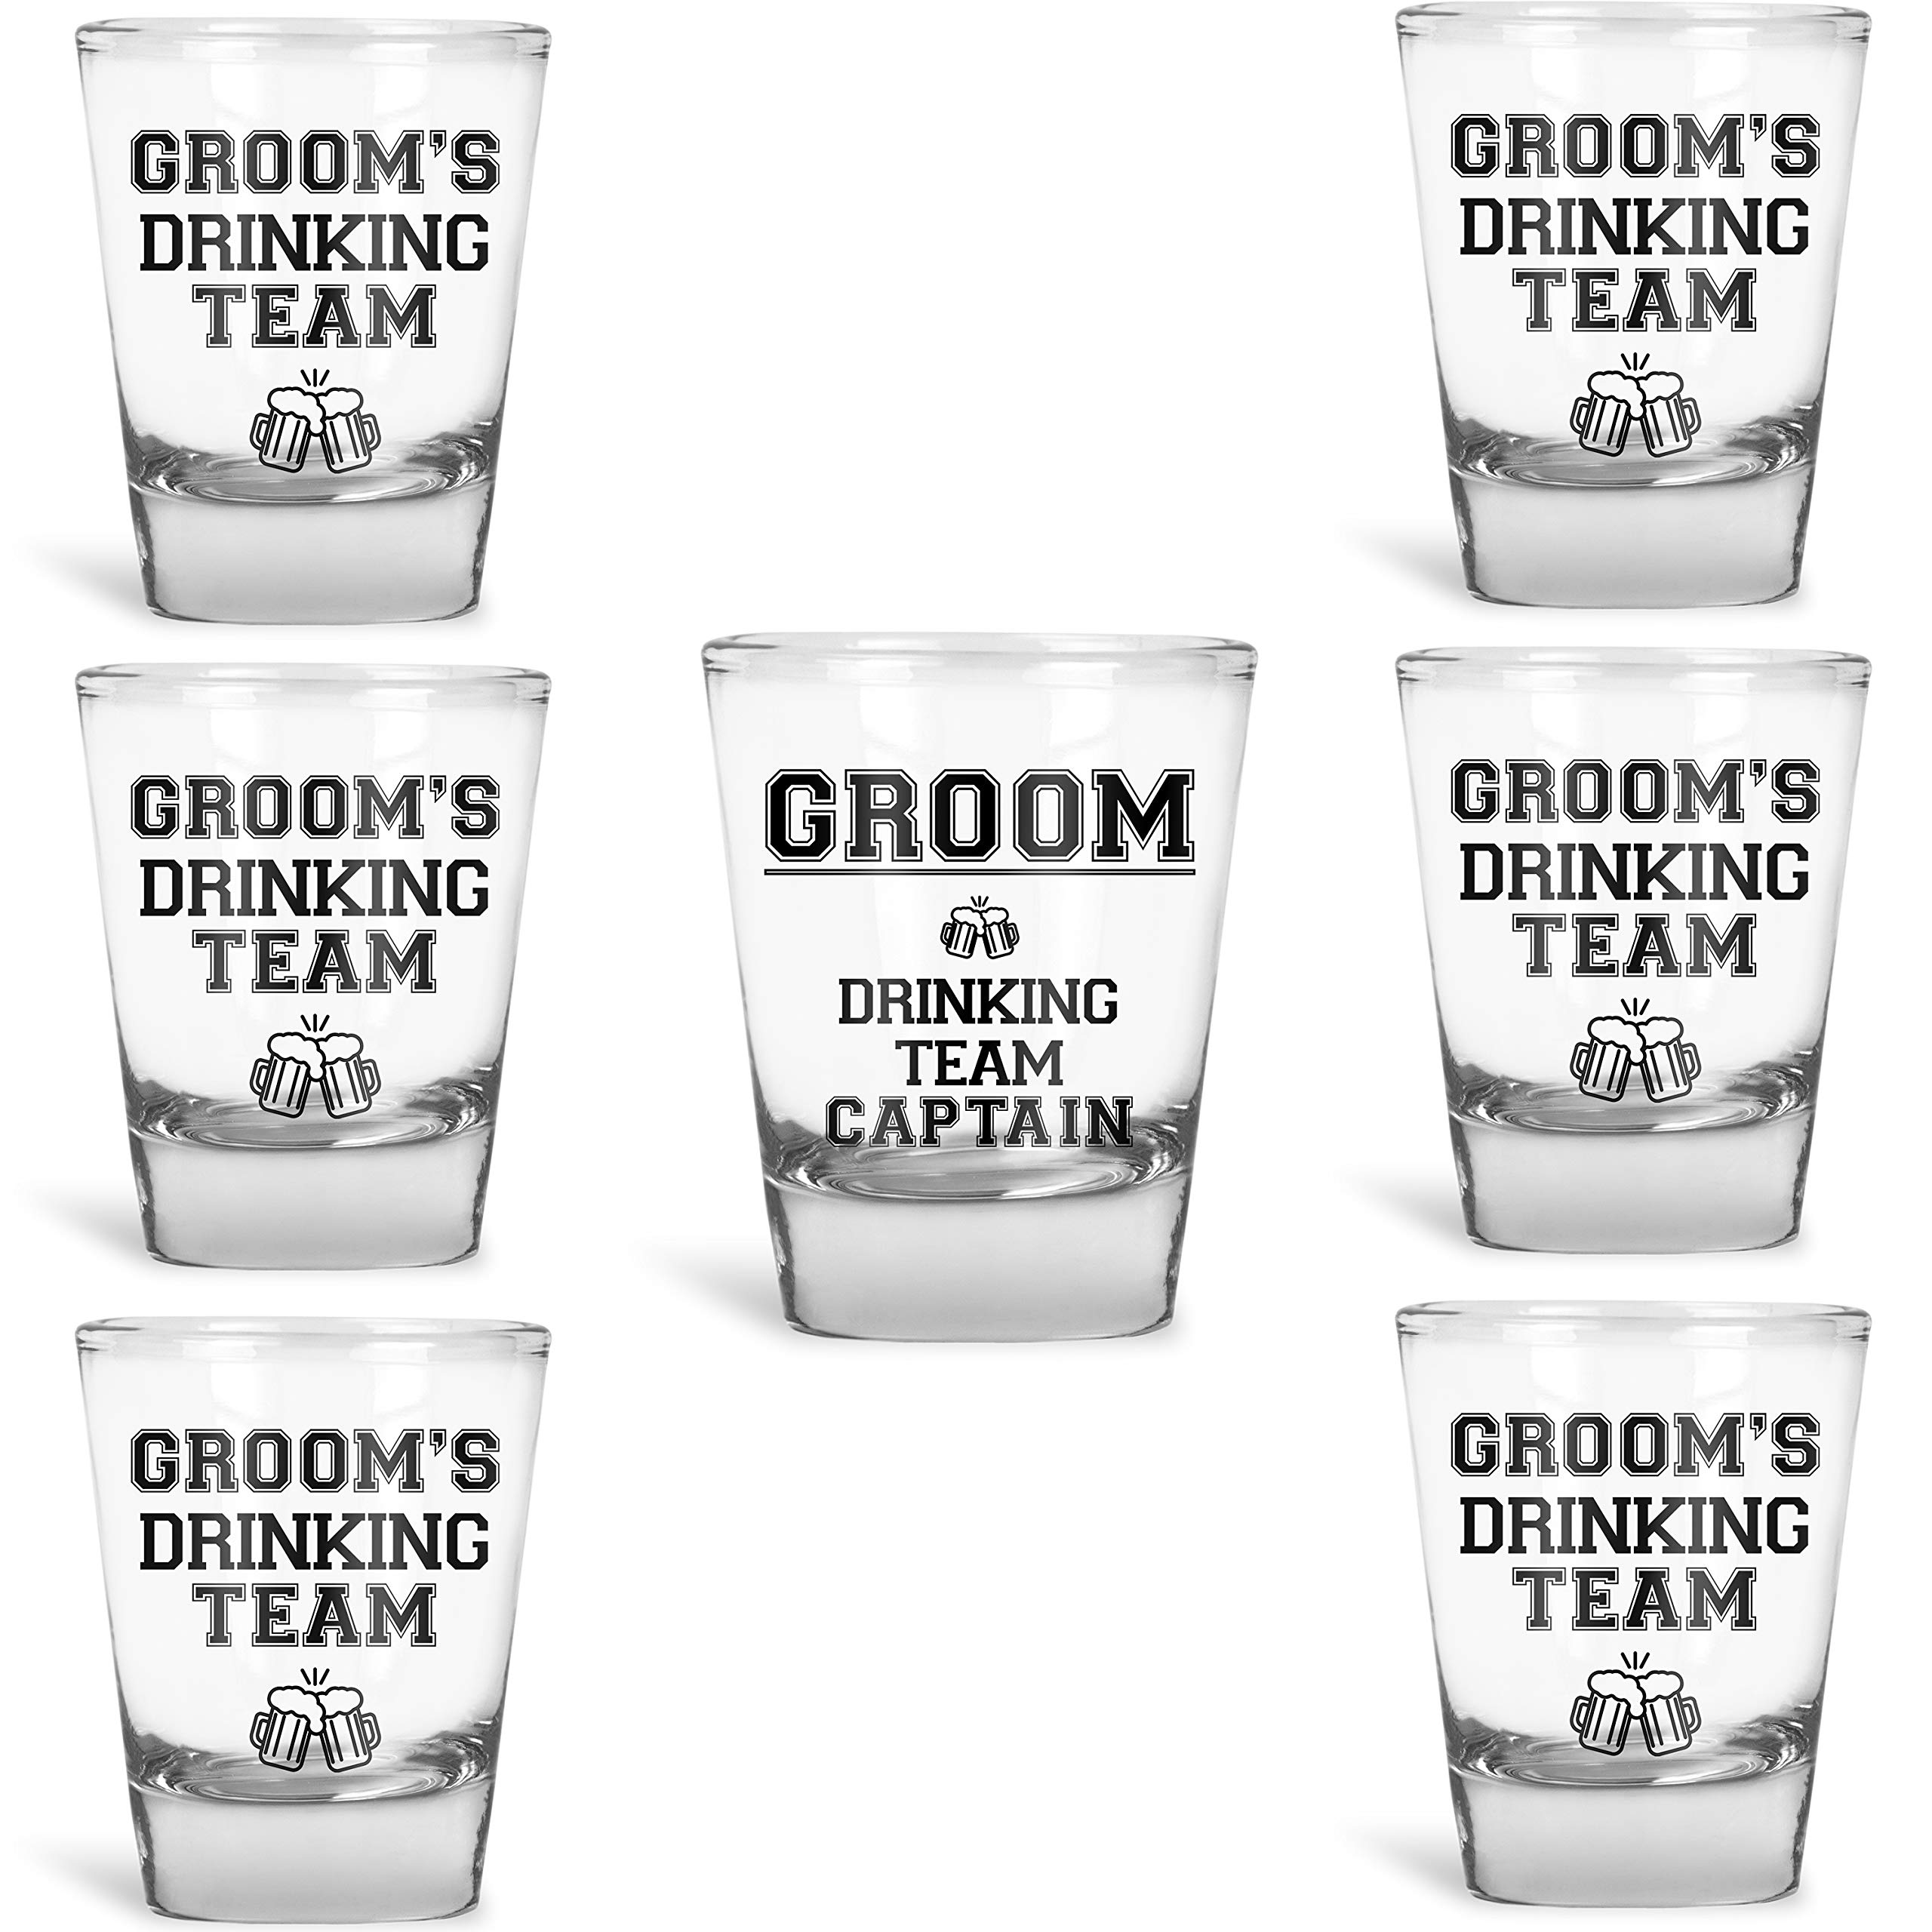 Groomsmen Gifts Groom's Drinking Team Shot Glasses - Pack of 6 Groom's Drinking Team Member + 1 Groom's Drinking Team Captain - 1.5 oz - Bachelor Party Favors by USA Custom Gifts